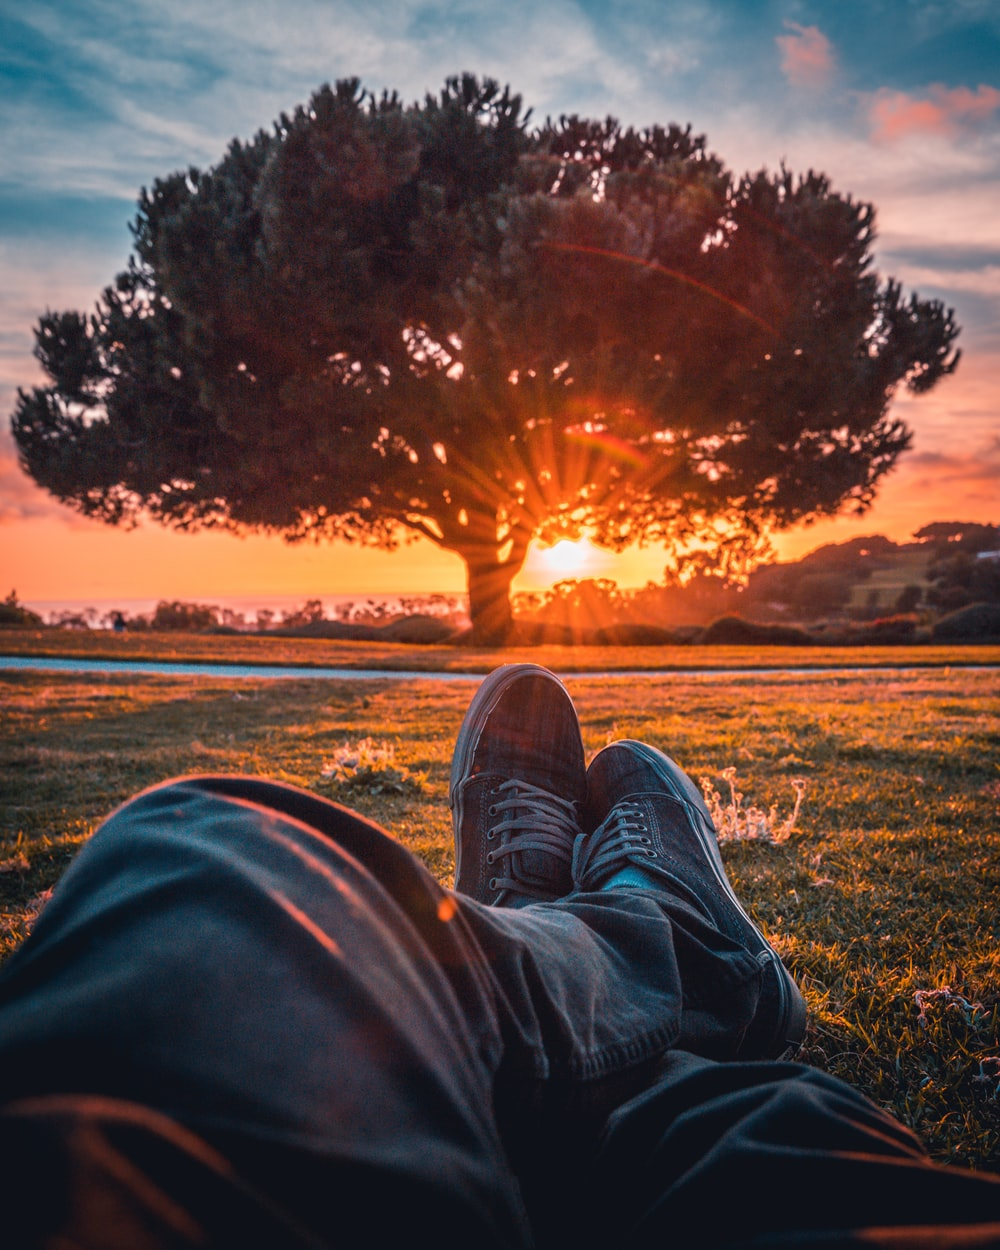 person in black pants and brown shoes sitting on grass field during sunset